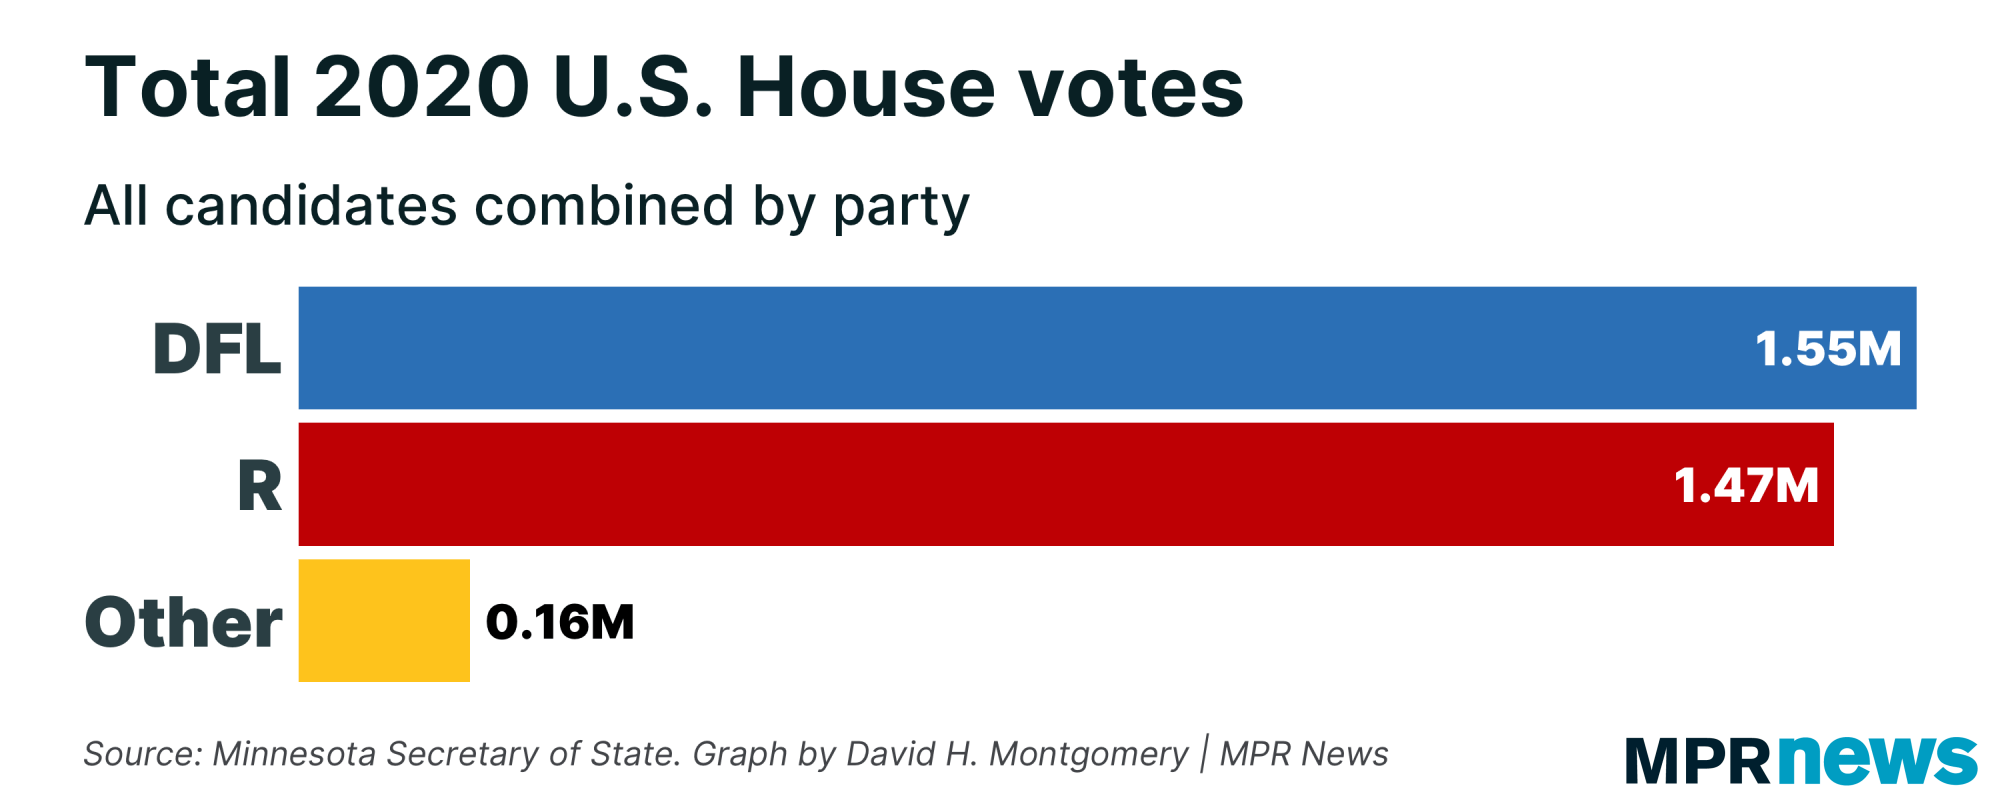 Chart of total votes by party for 2020 U.S. House candidates